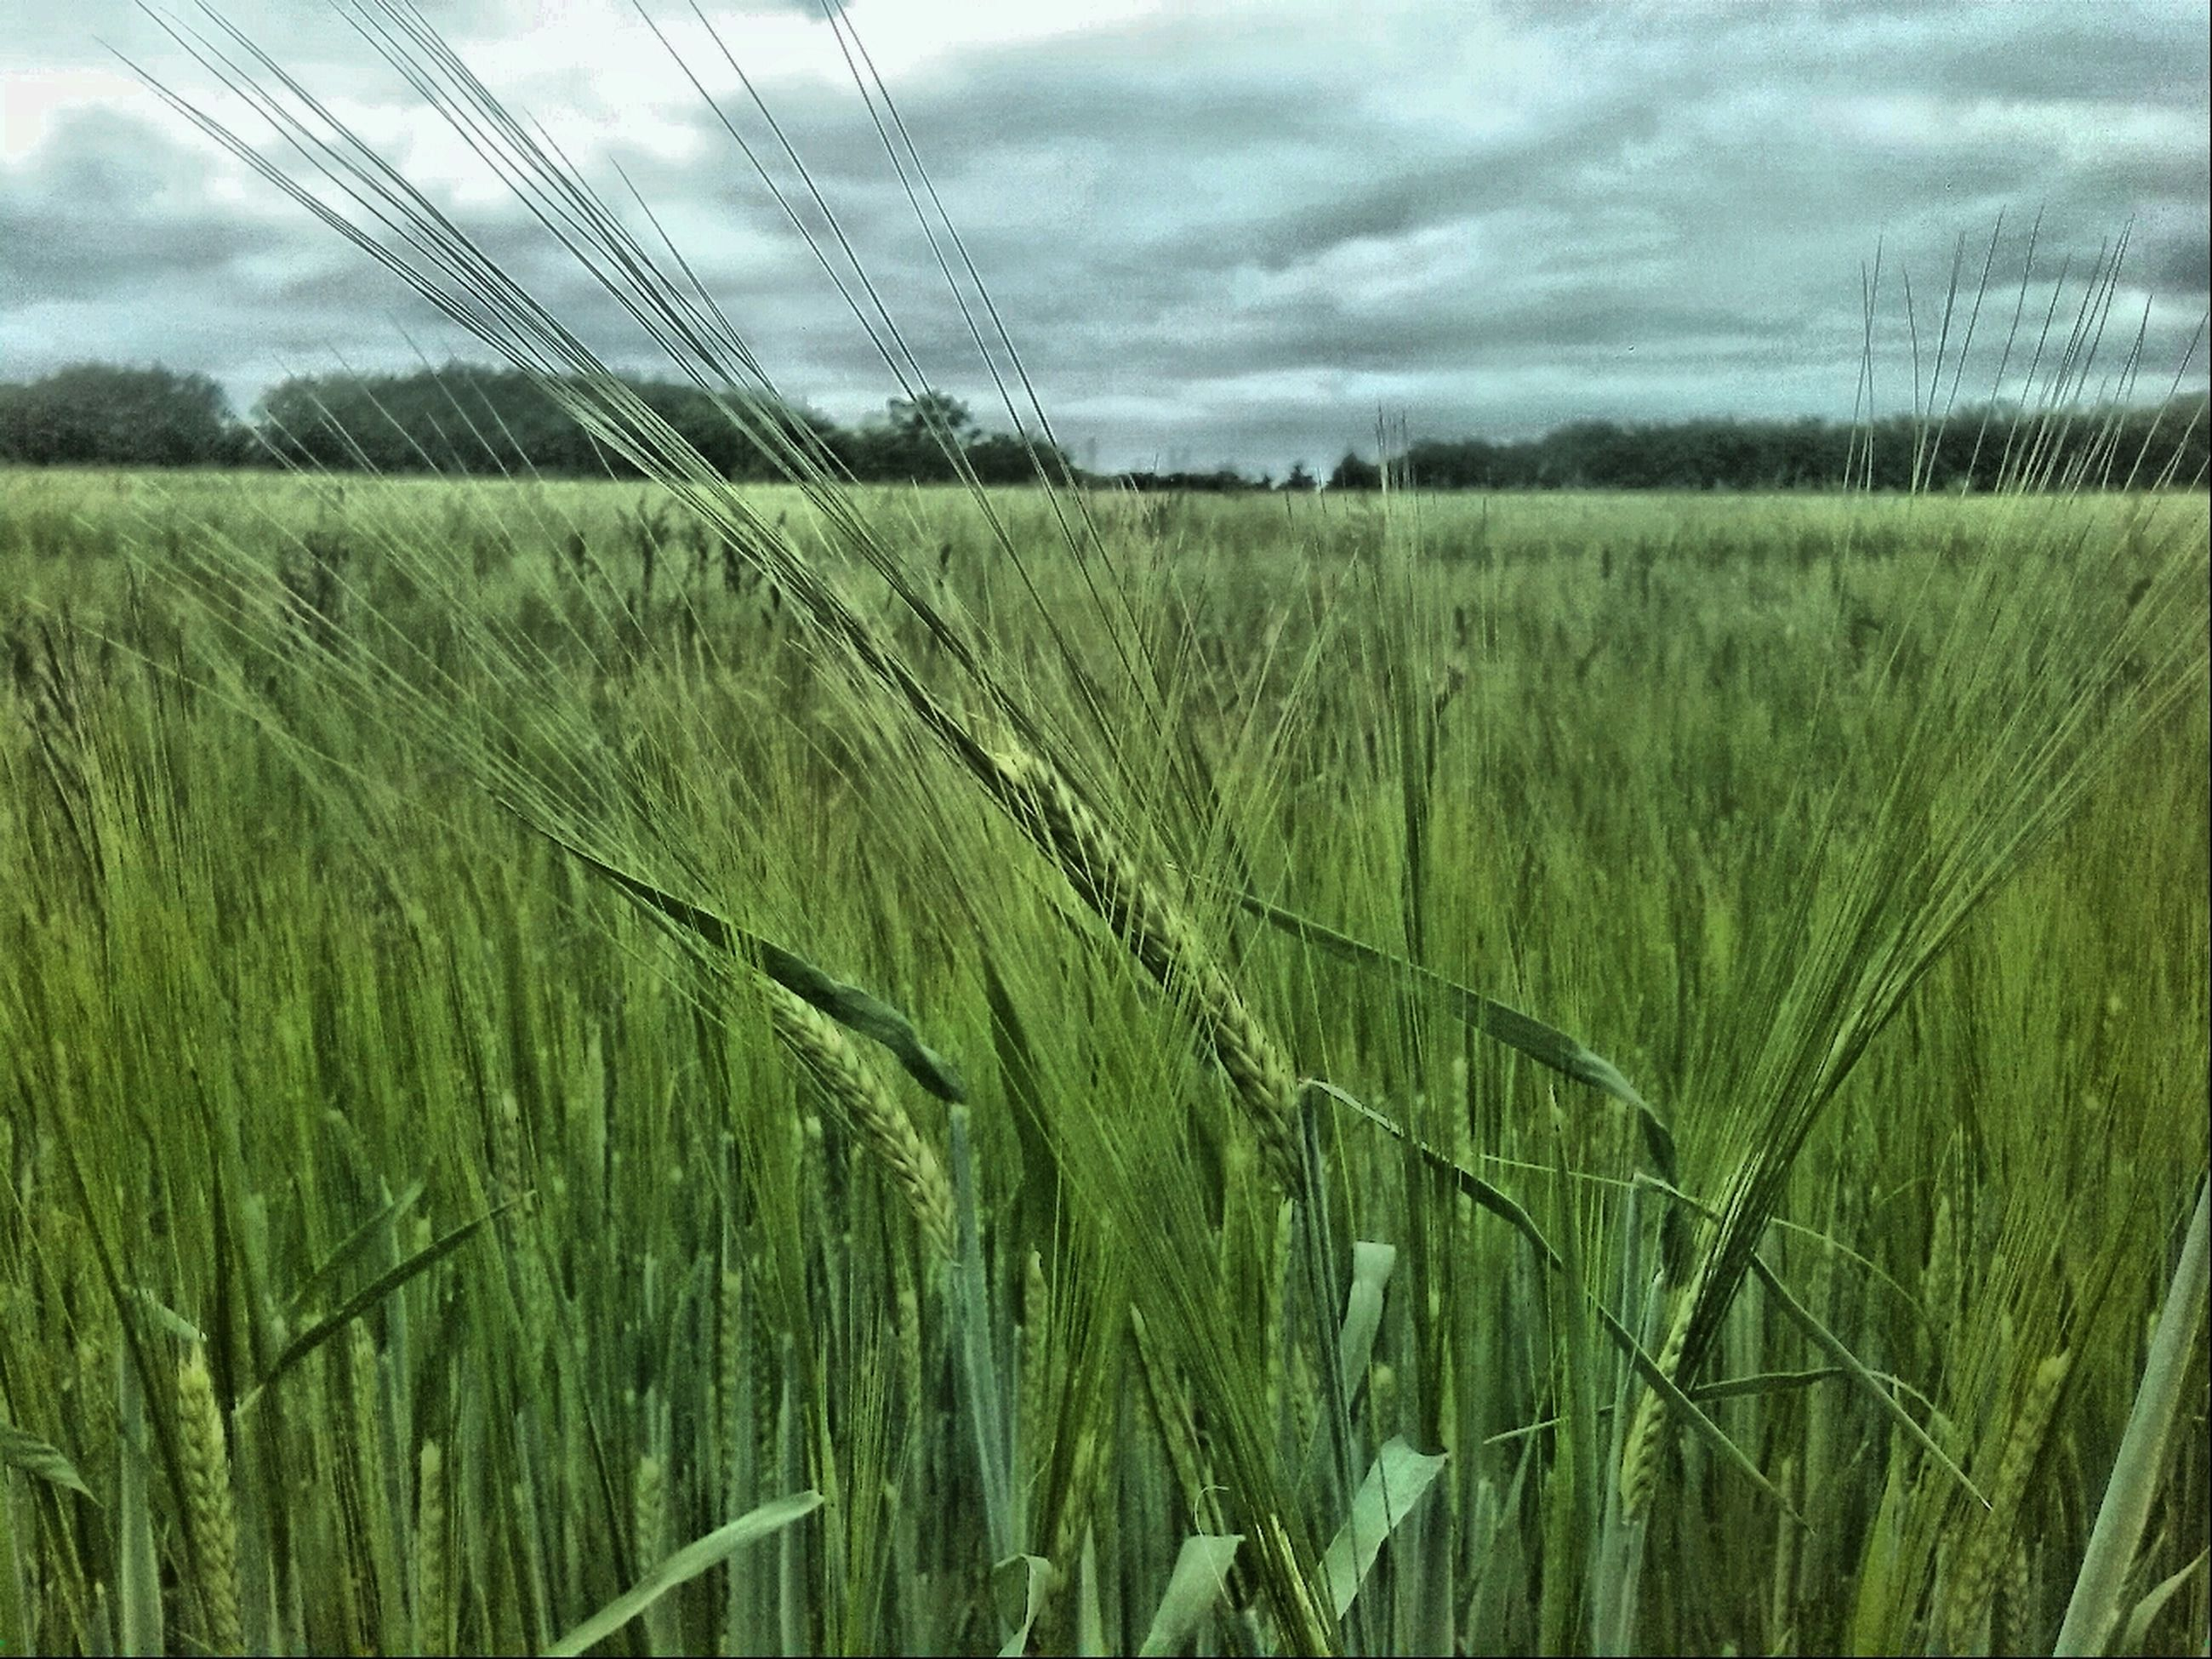 field, agriculture, rural scene, crop, growth, sky, farm, landscape, grass, tranquility, cereal plant, tranquil scene, nature, plant, beauty in nature, scenics, cultivated land, cloud - sky, wheat, cloud